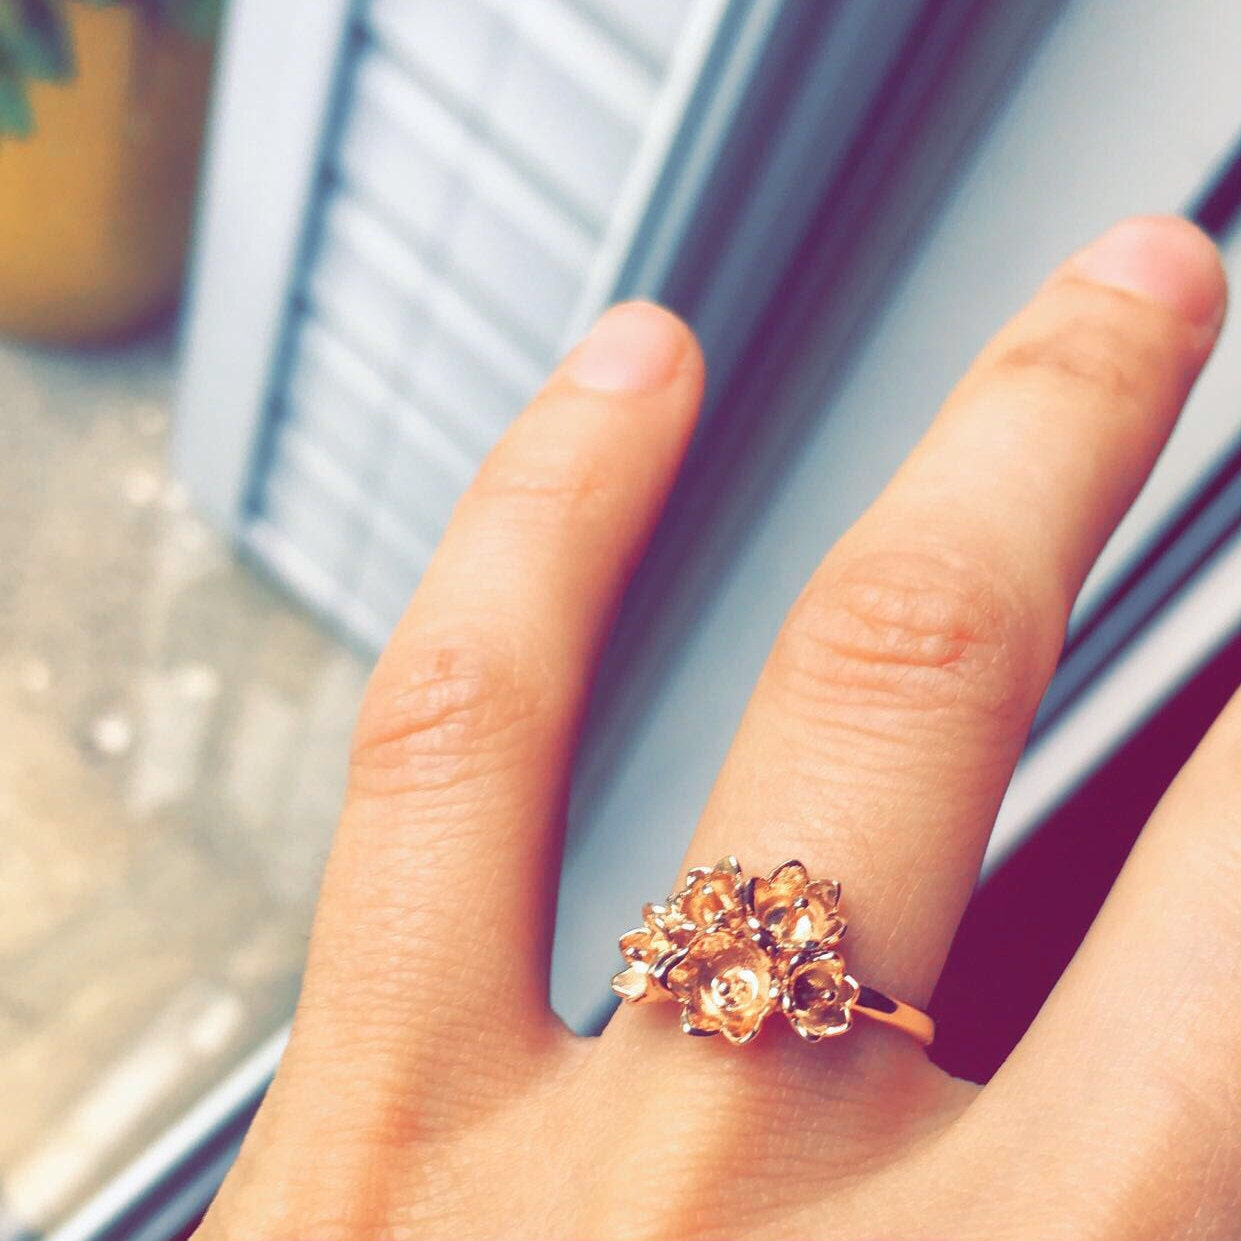 Dani Douglas added a photo of their purchase